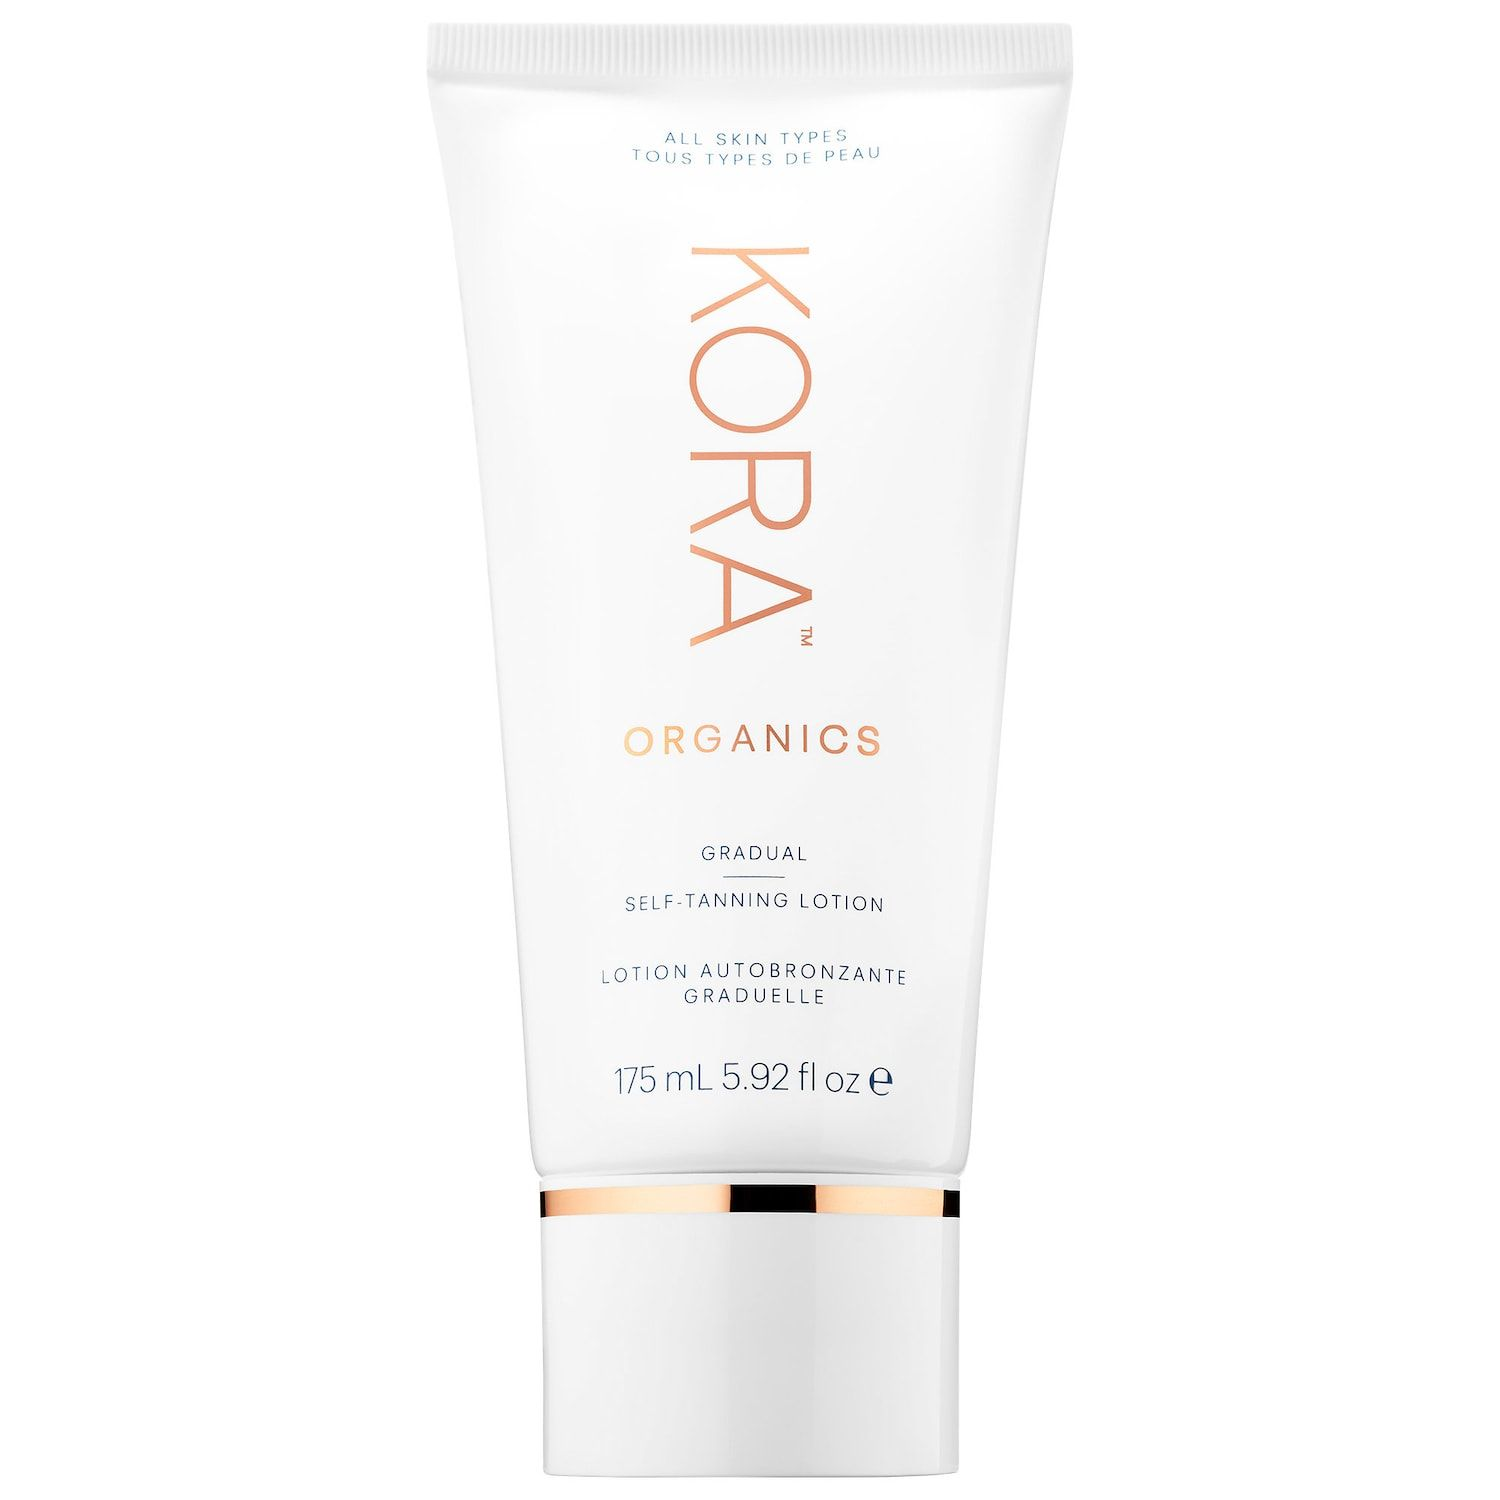 The Organic Option Gradual Self-Tanning Lotion Kora Organics sephora.com $48.00 SHOP NOW If you're conscious about wanting green ingredients, count on Miranda Kerr's Kora Organics. Boosted with noni fruit extract, rosehip oil, and seabuck thorn oil to moisturize, soften, and make skin look radiant, this moisturizer gives a subtle, not drastic, color change.